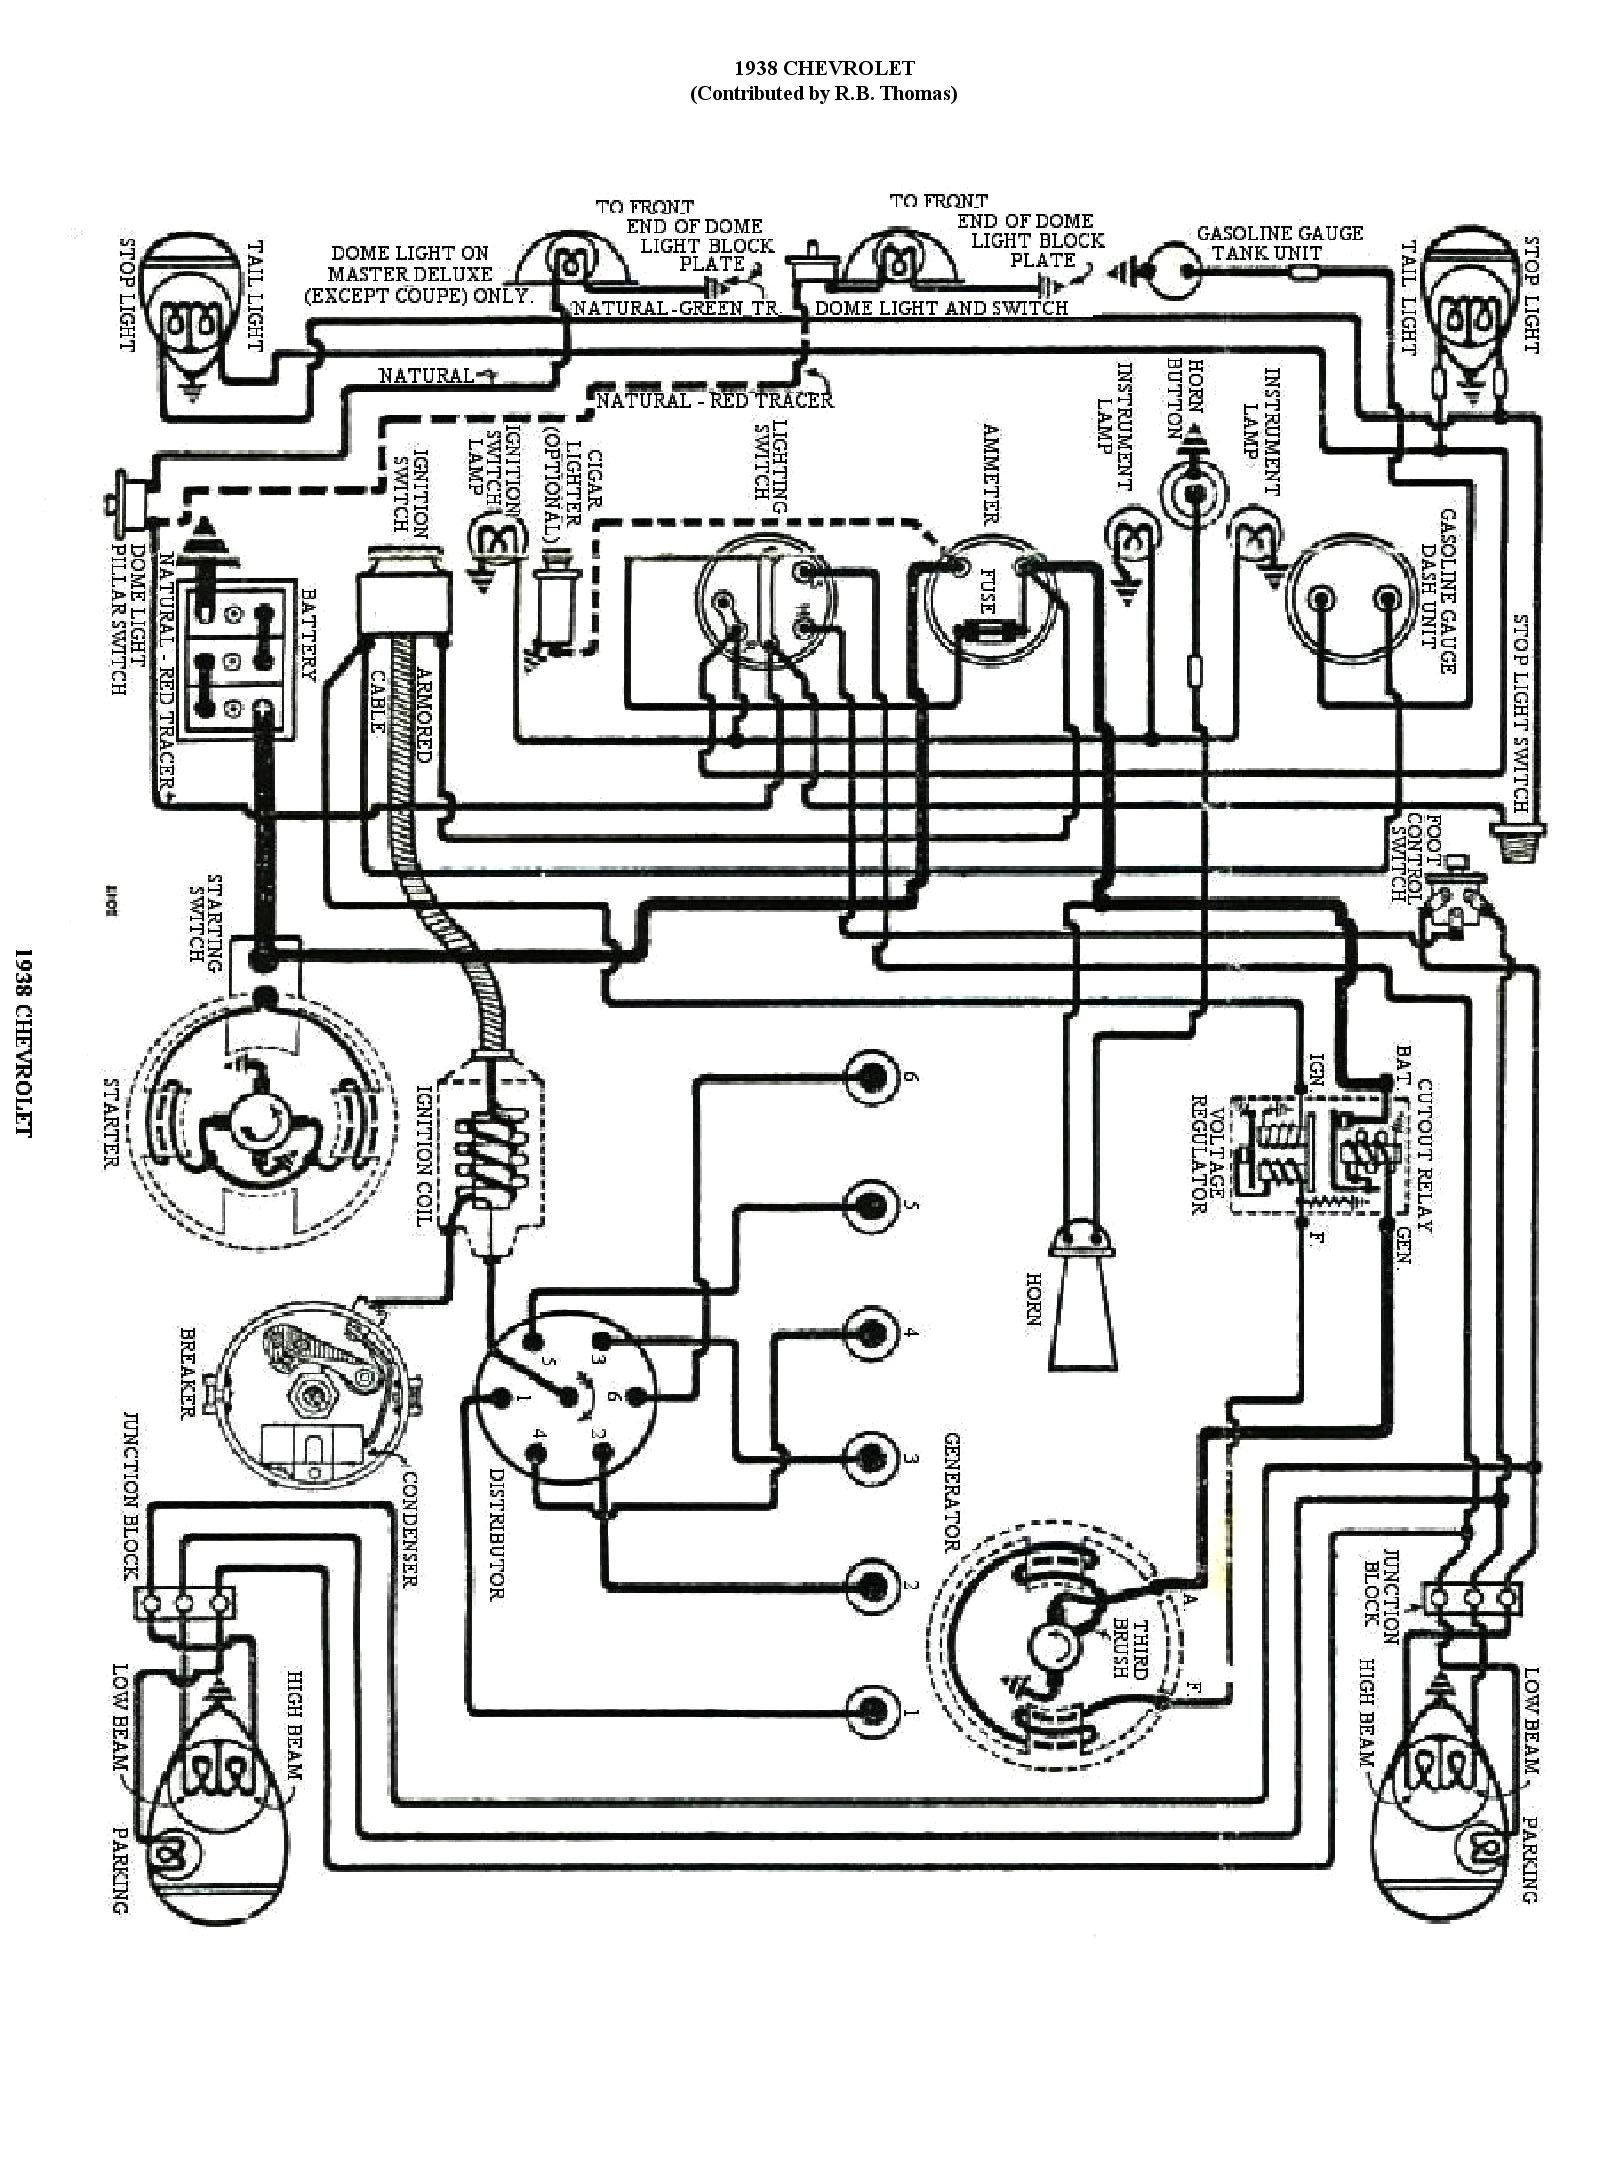 chevy wiring wiring library Ford Alternator Wiring Diagram 1938 wiring